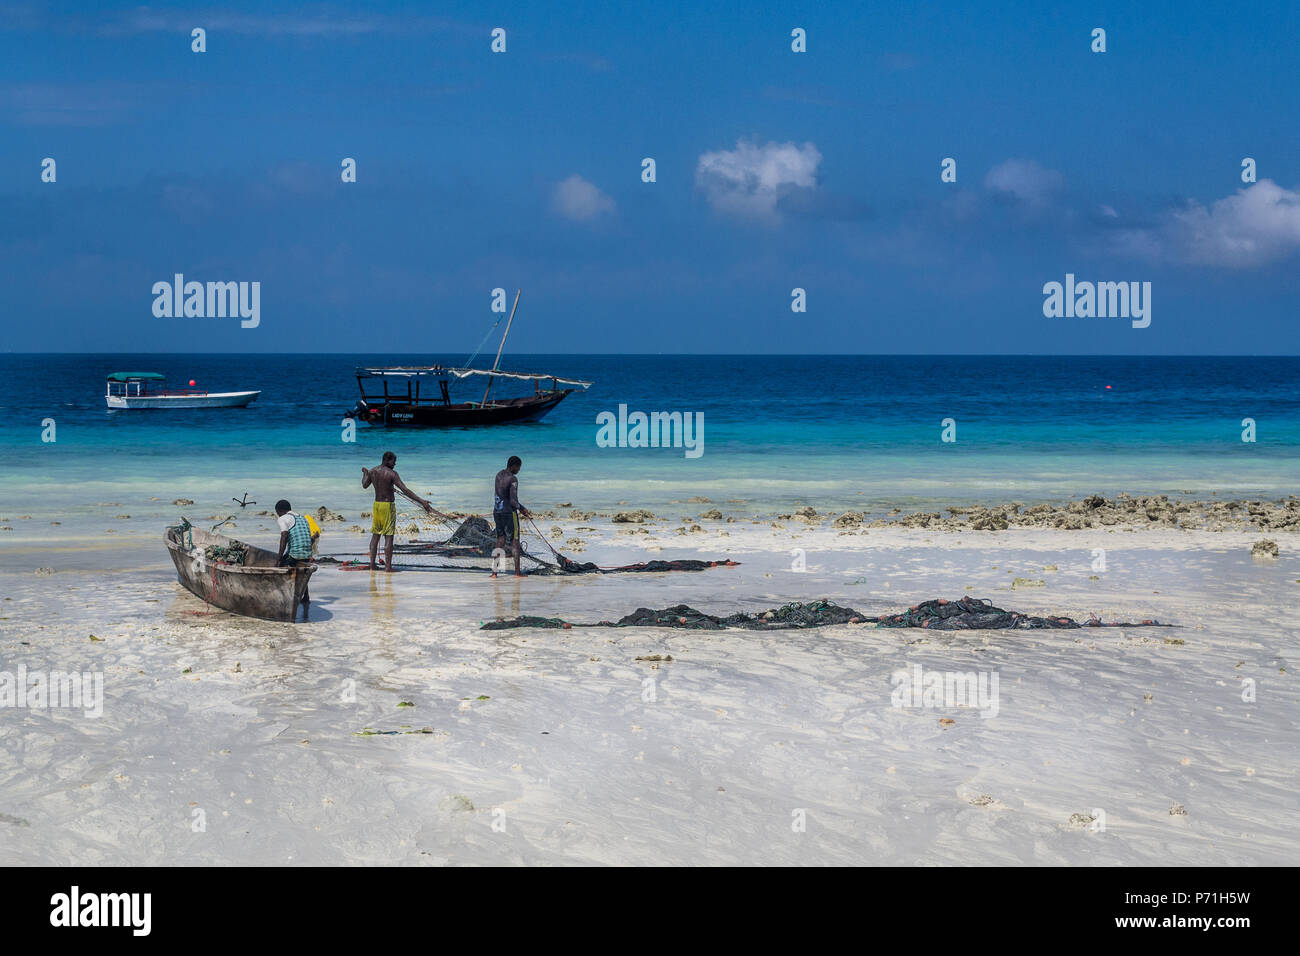 Local life and workers in tanzania - Stock Image